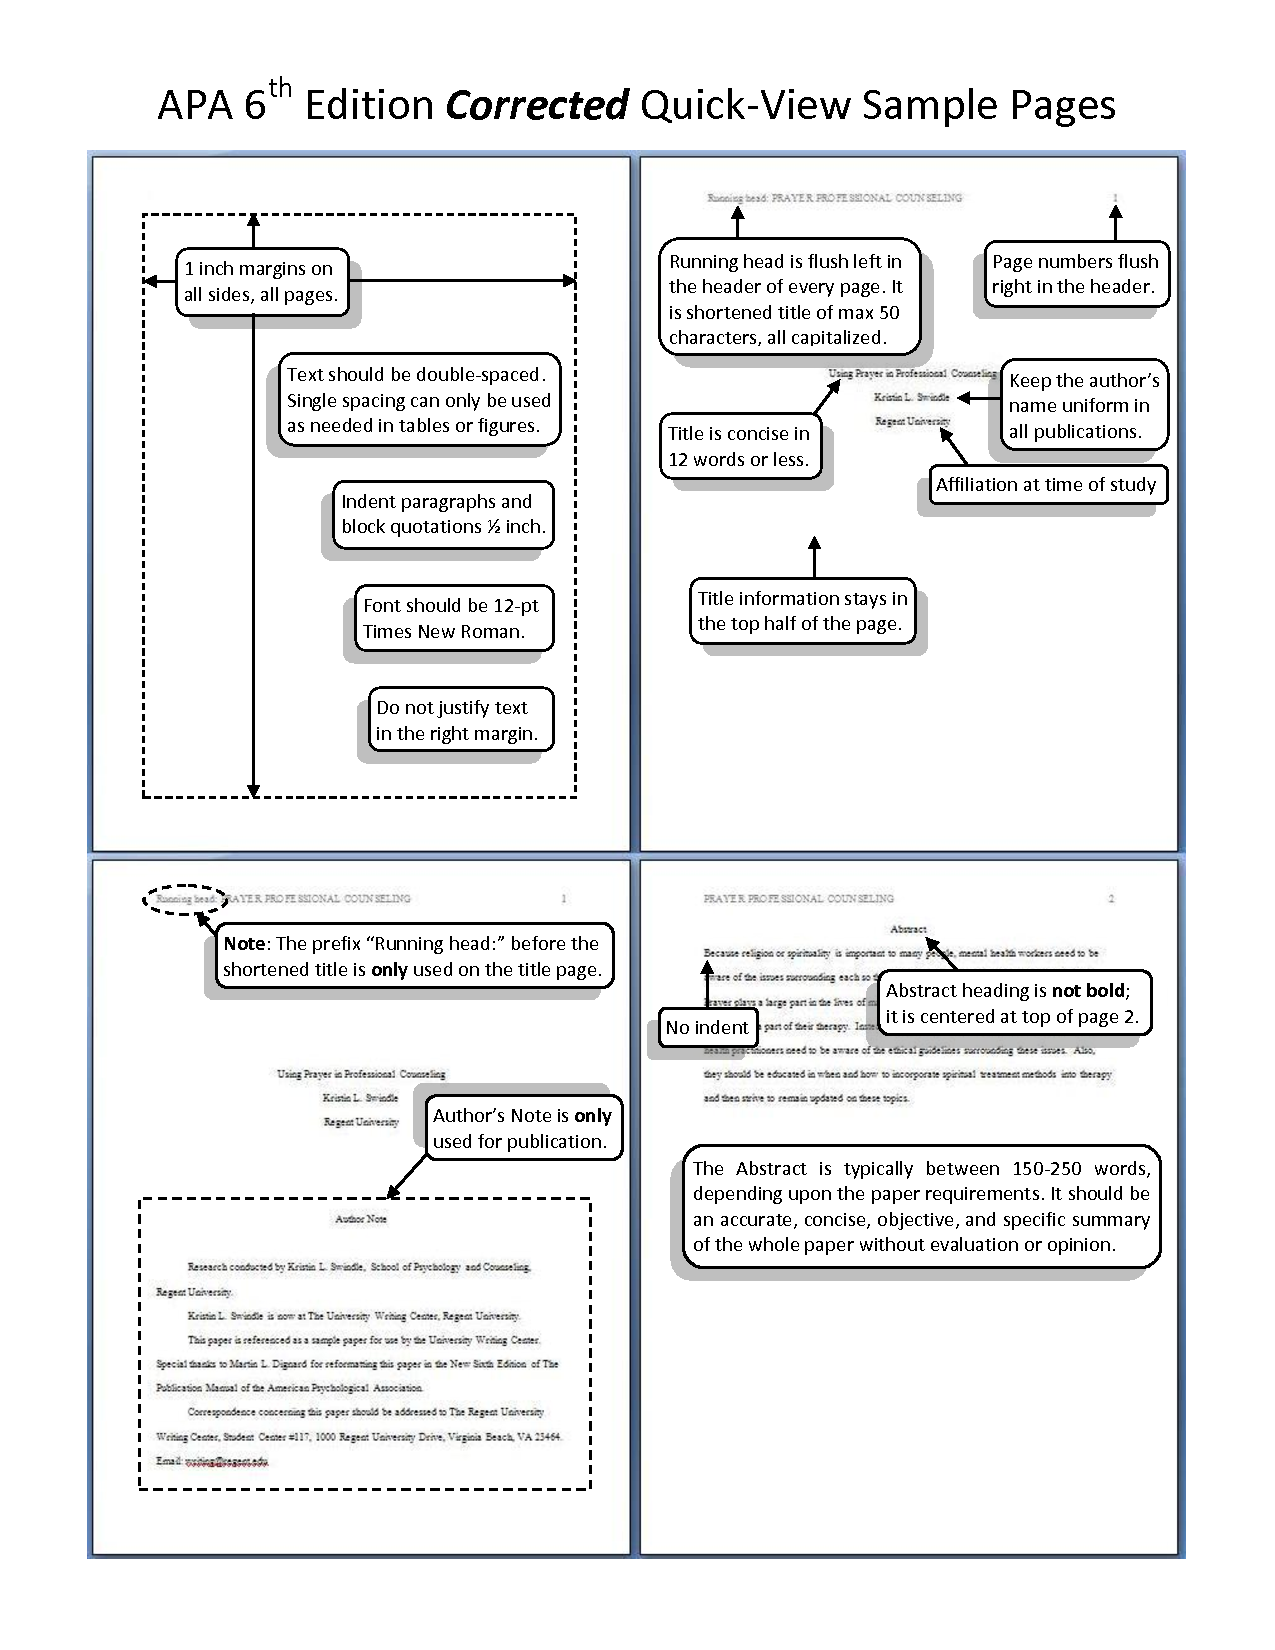 what part(s) of an apa-formatted essay should be single spaced